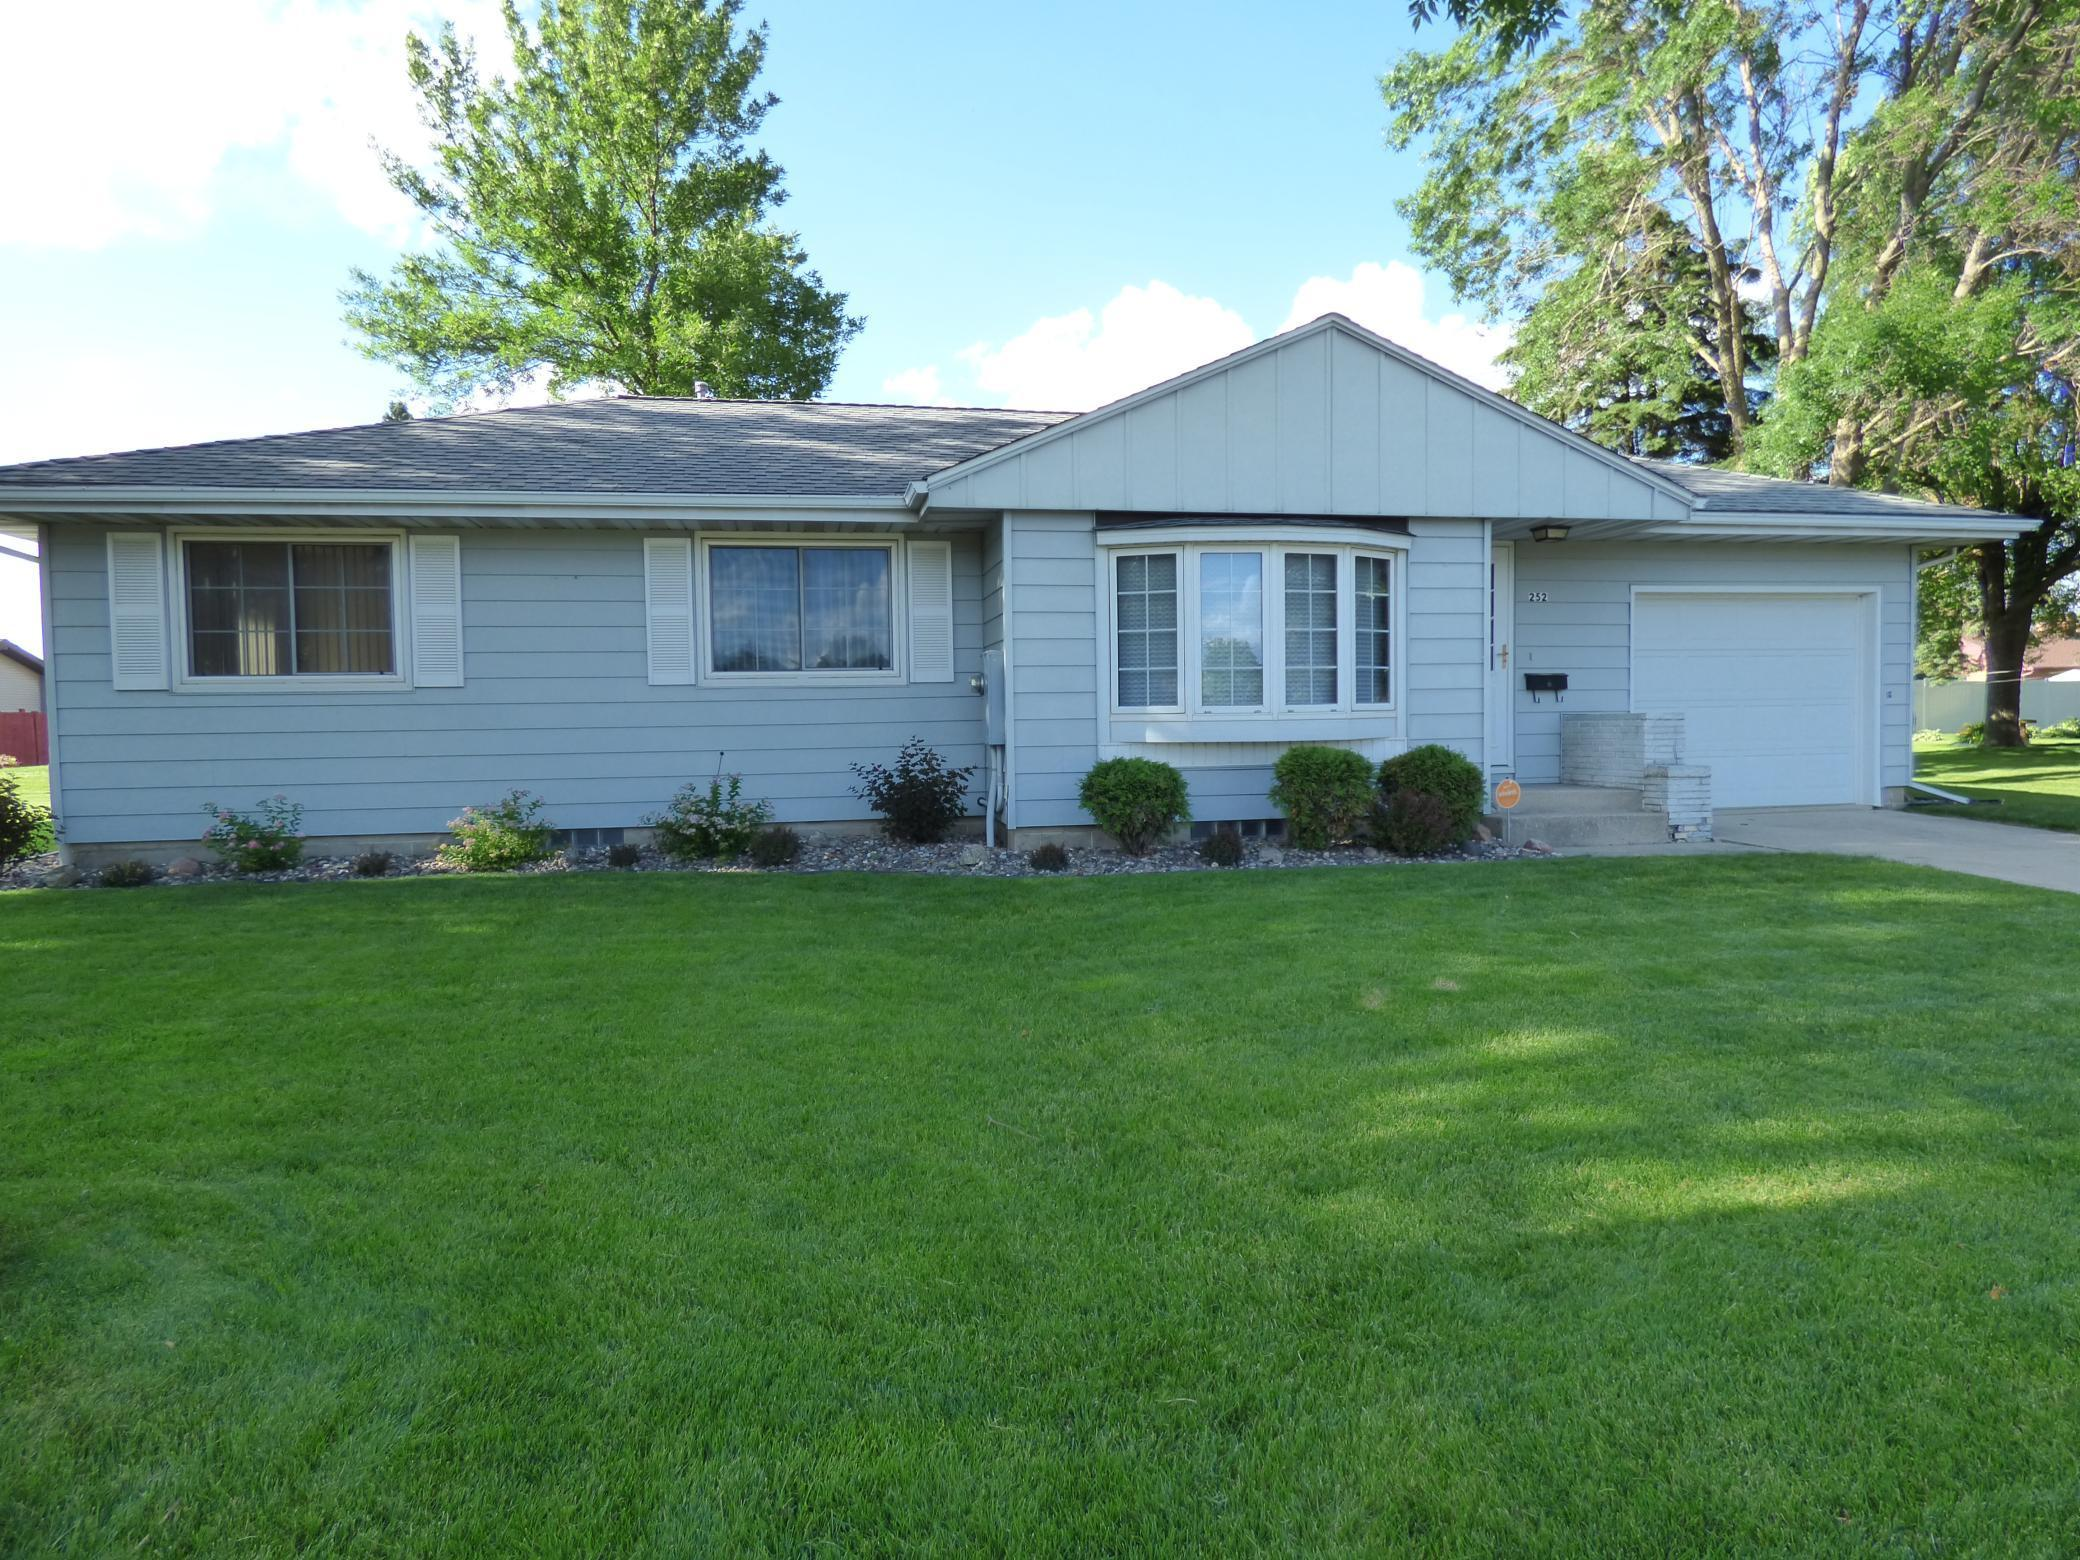 252 4th NW Property Photo - Blooming Prairie, MN real estate listing